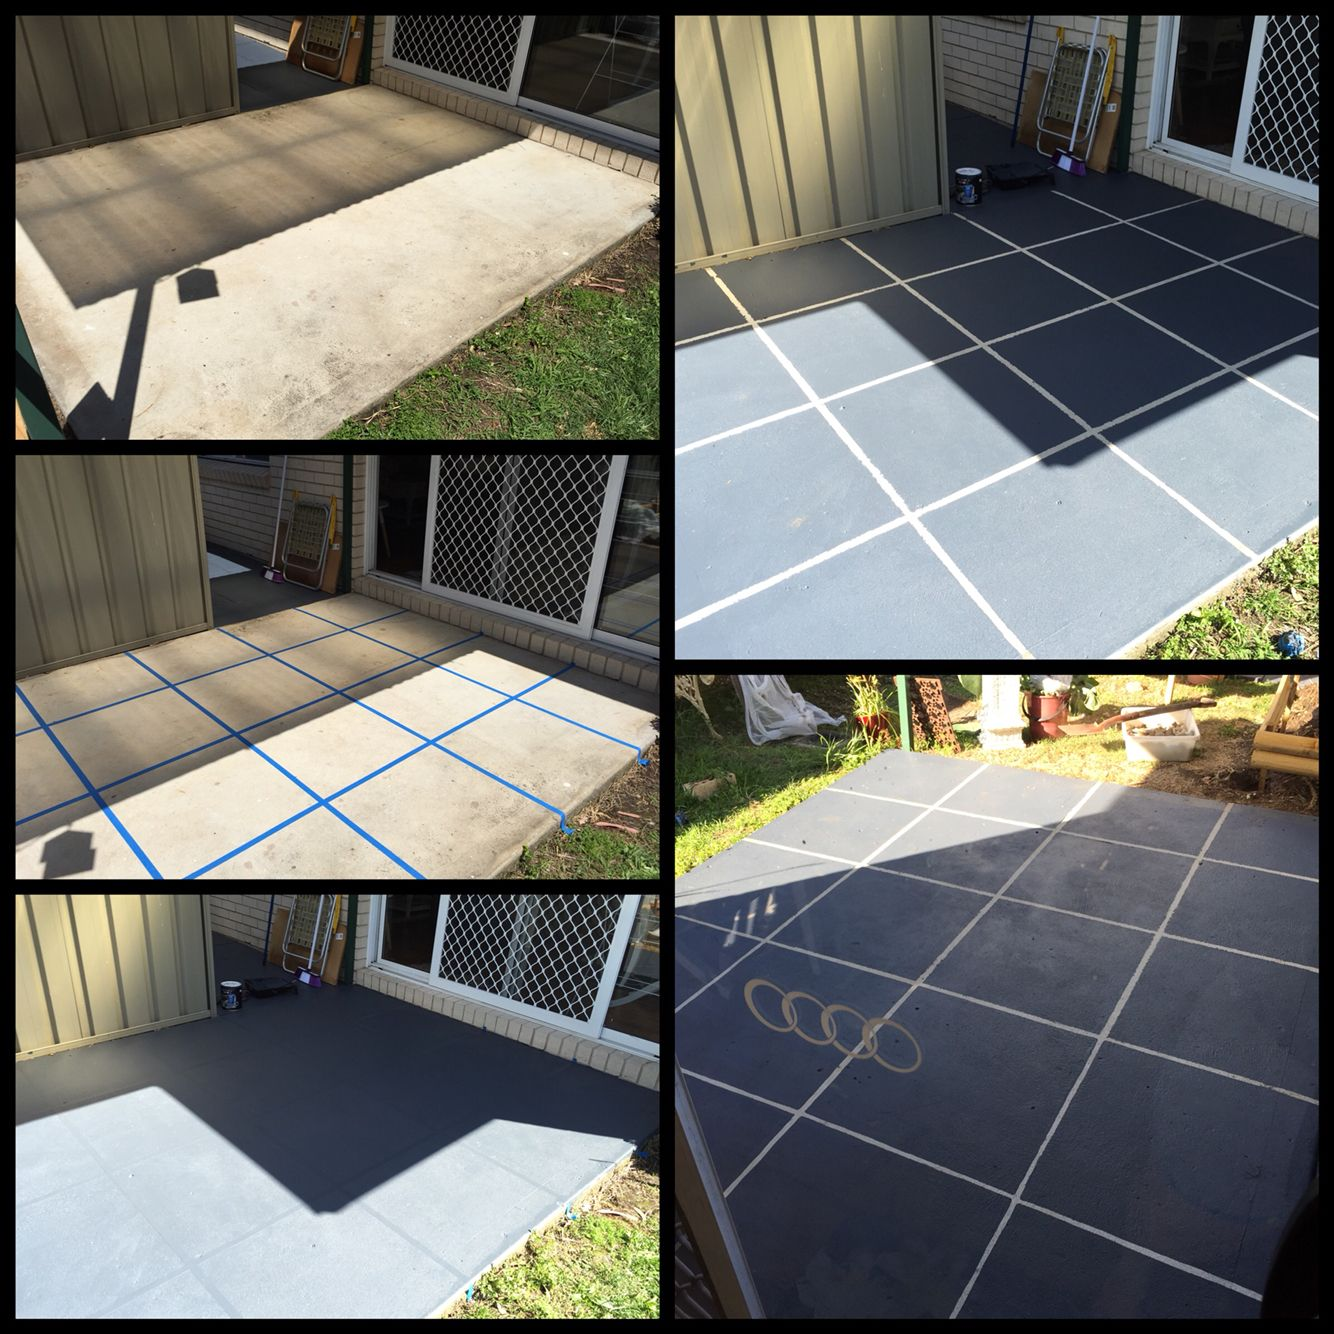 Diy Patio Revamp Give Your Concrete Patio Floor A Whole New Look With Some Tape And Paving Paint I Chose Larg Paint Concrete Patio Concrete Patio Patio Tiles